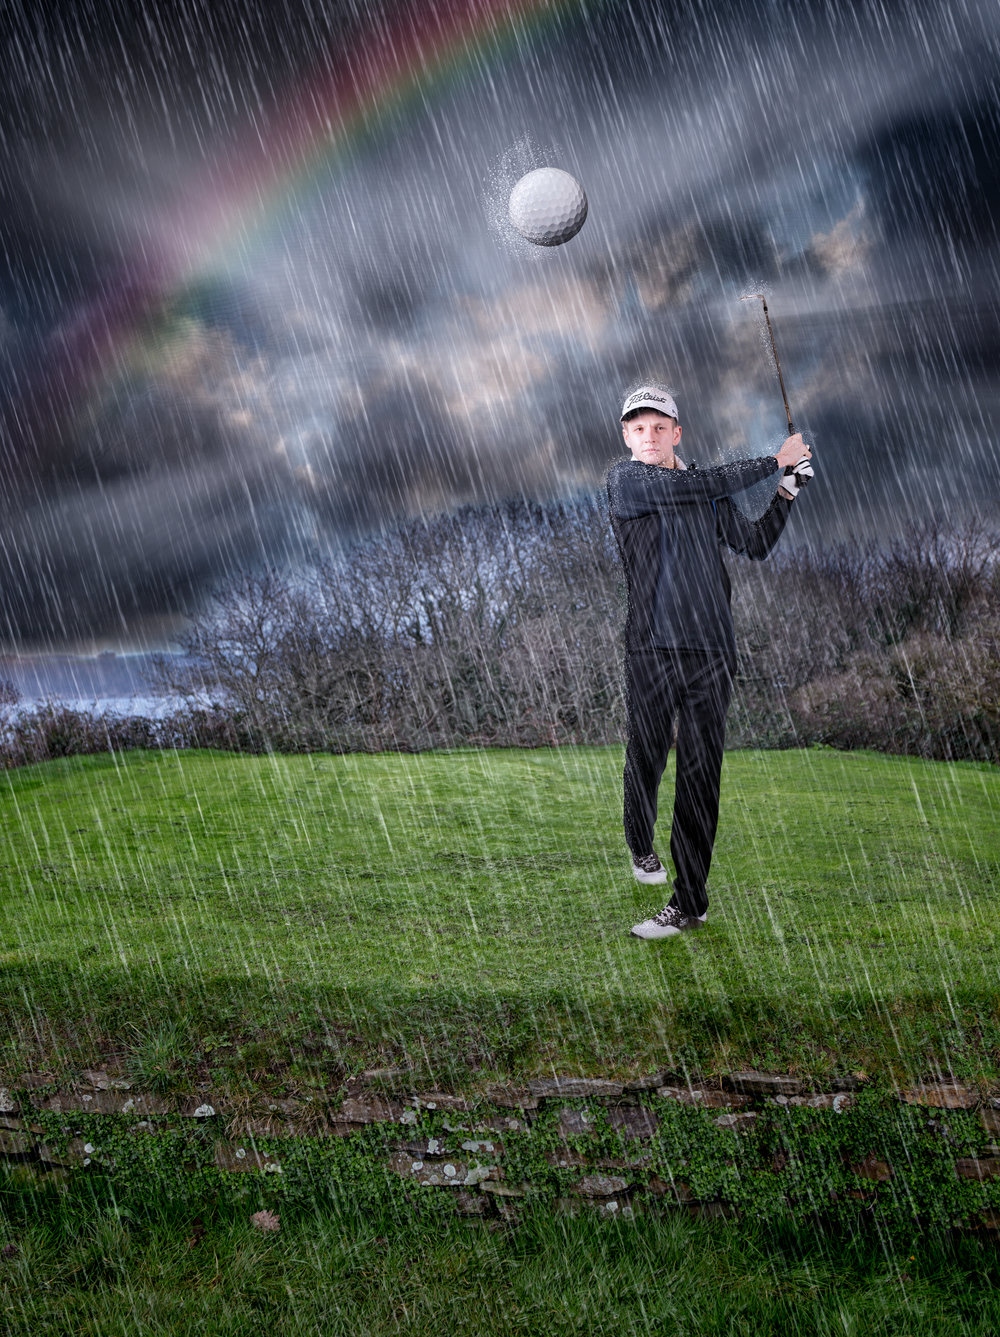 Alex teeing off tonal contrast wet grass.jpg